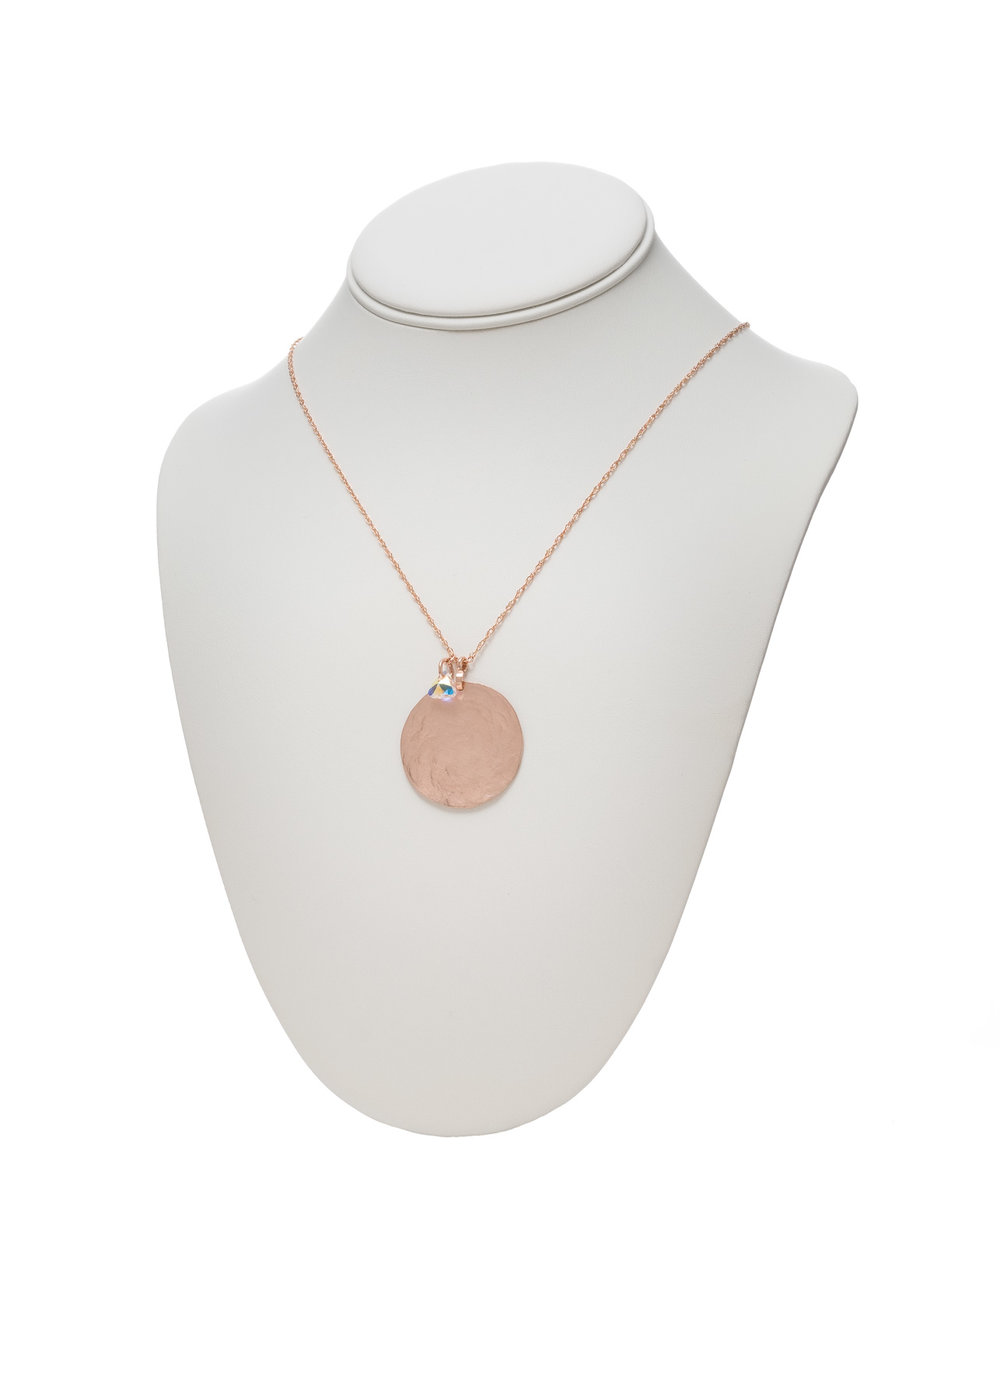 Rose Gold Medallion Necklace - $150